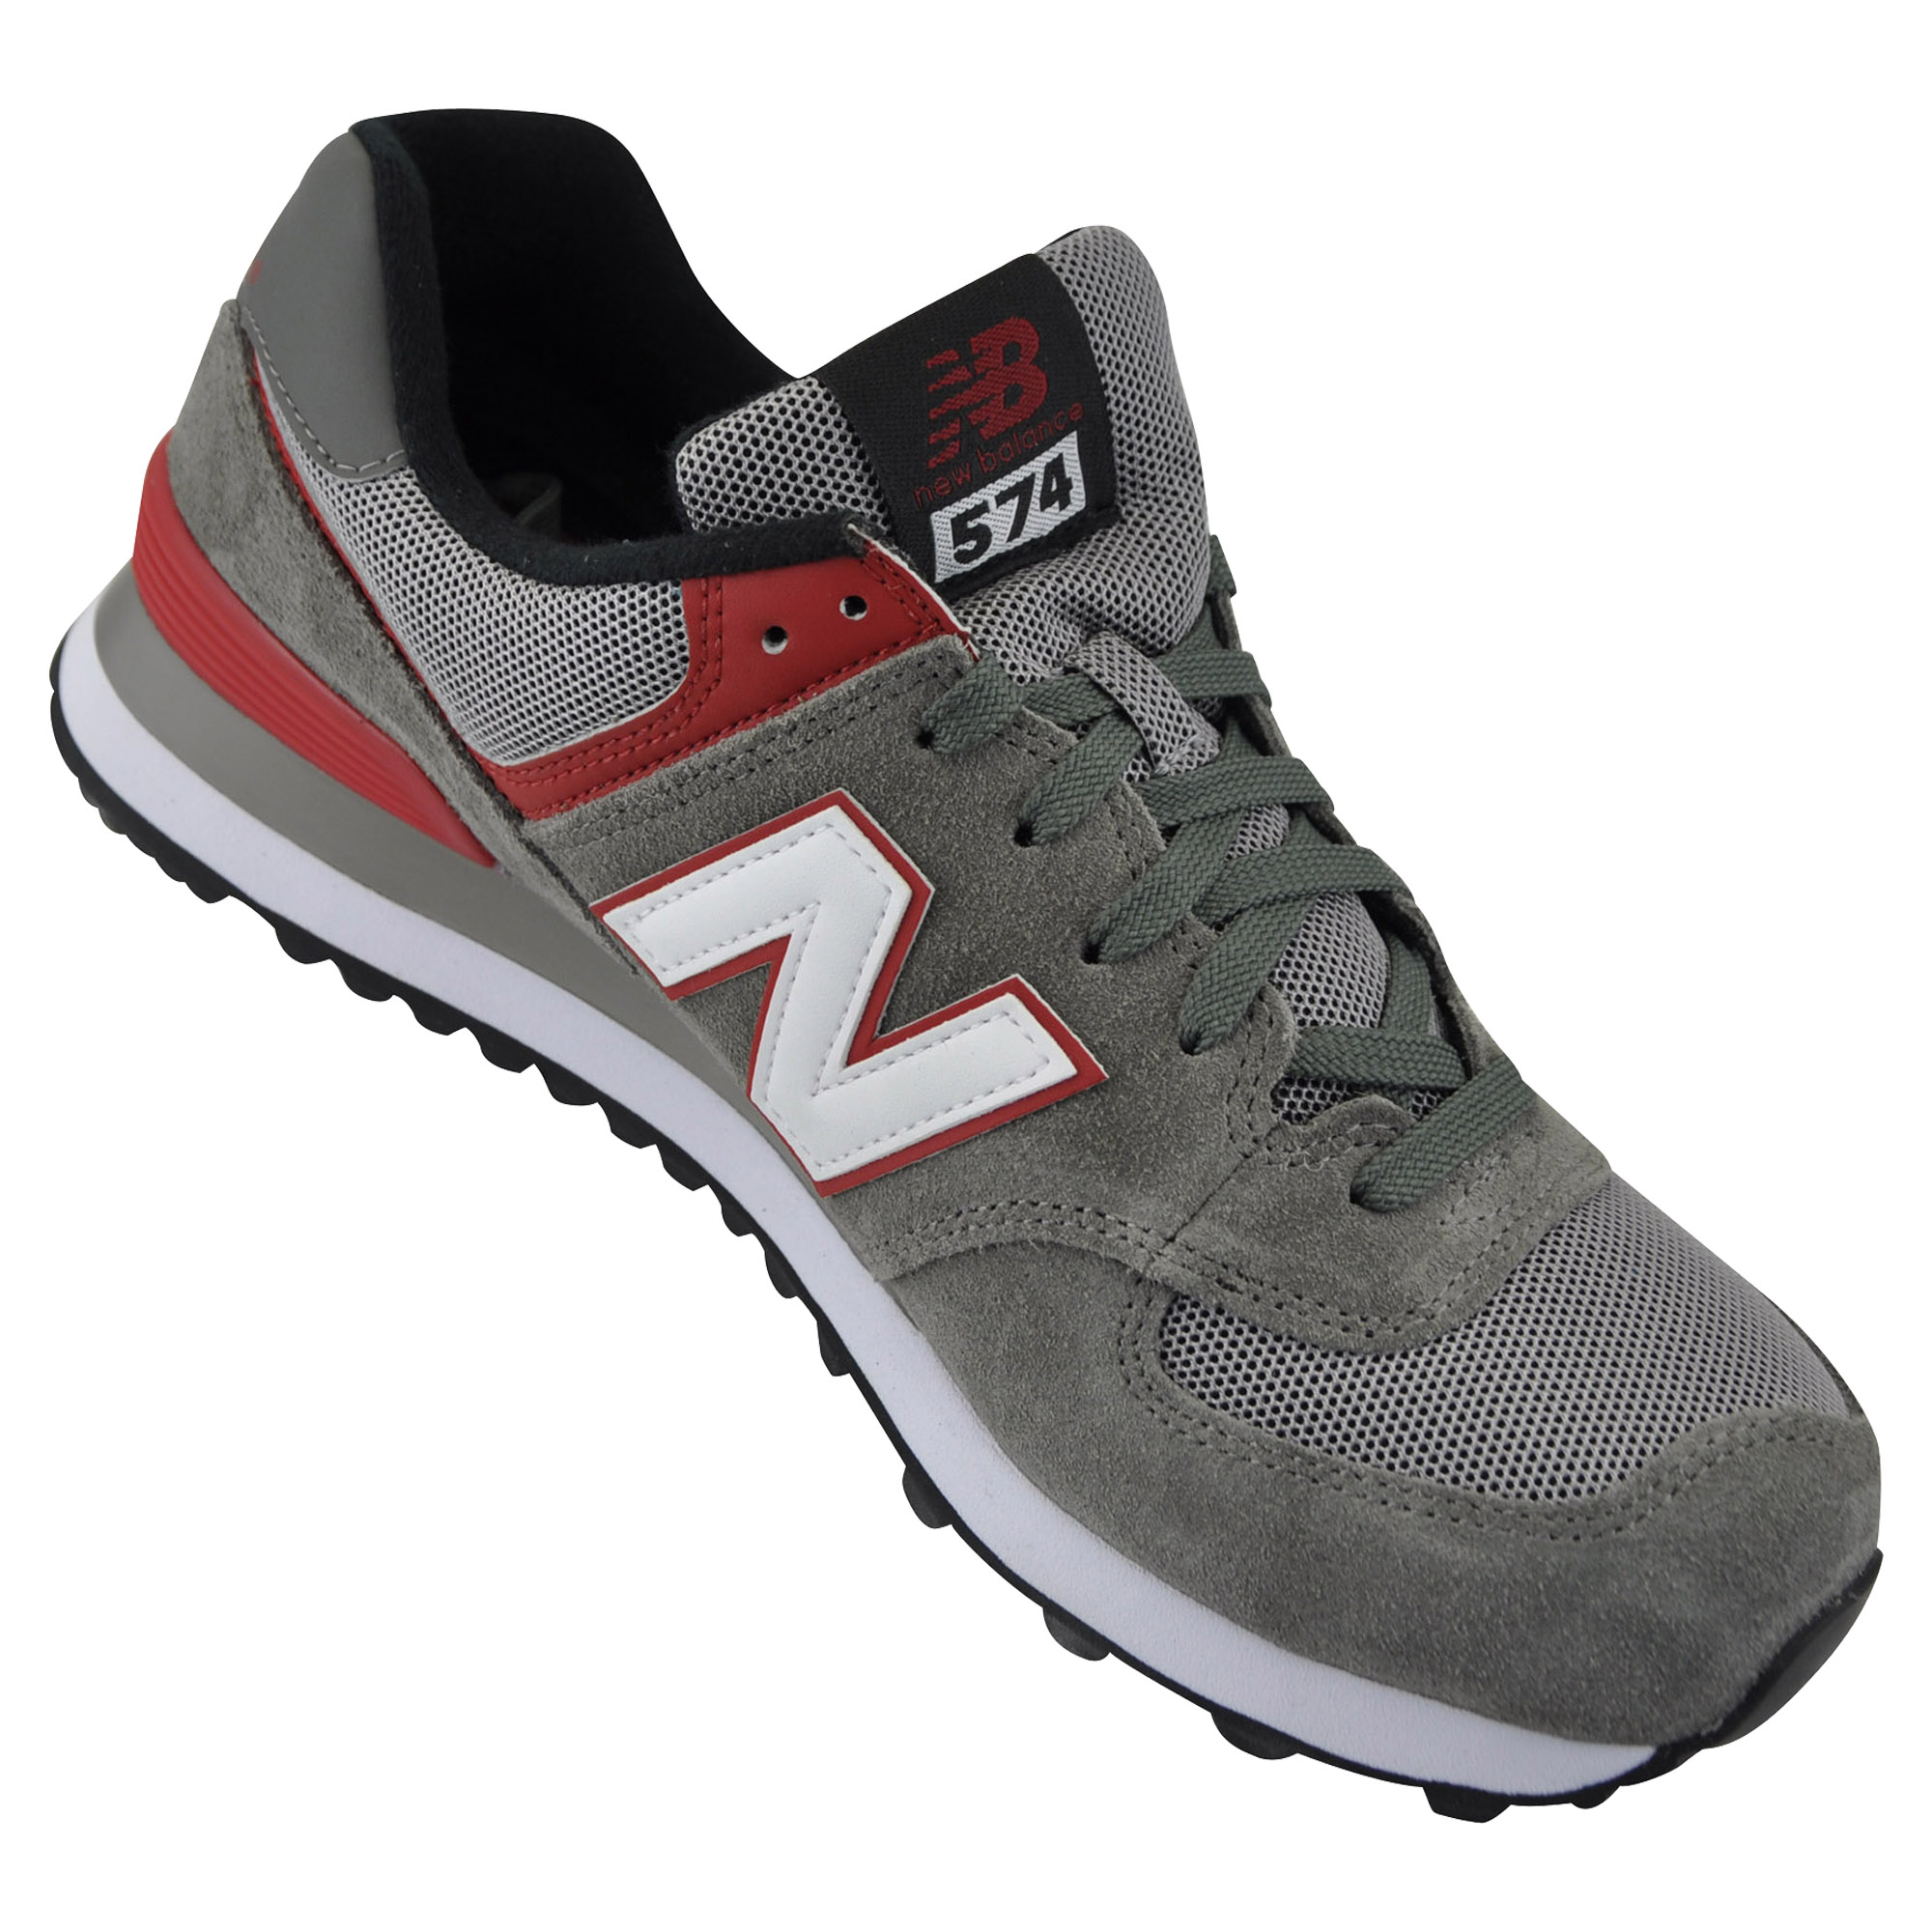 new balance ml574 wr996 ml373 wl410 wl373 wr996 running shoes shoes casual ebay. Black Bedroom Furniture Sets. Home Design Ideas